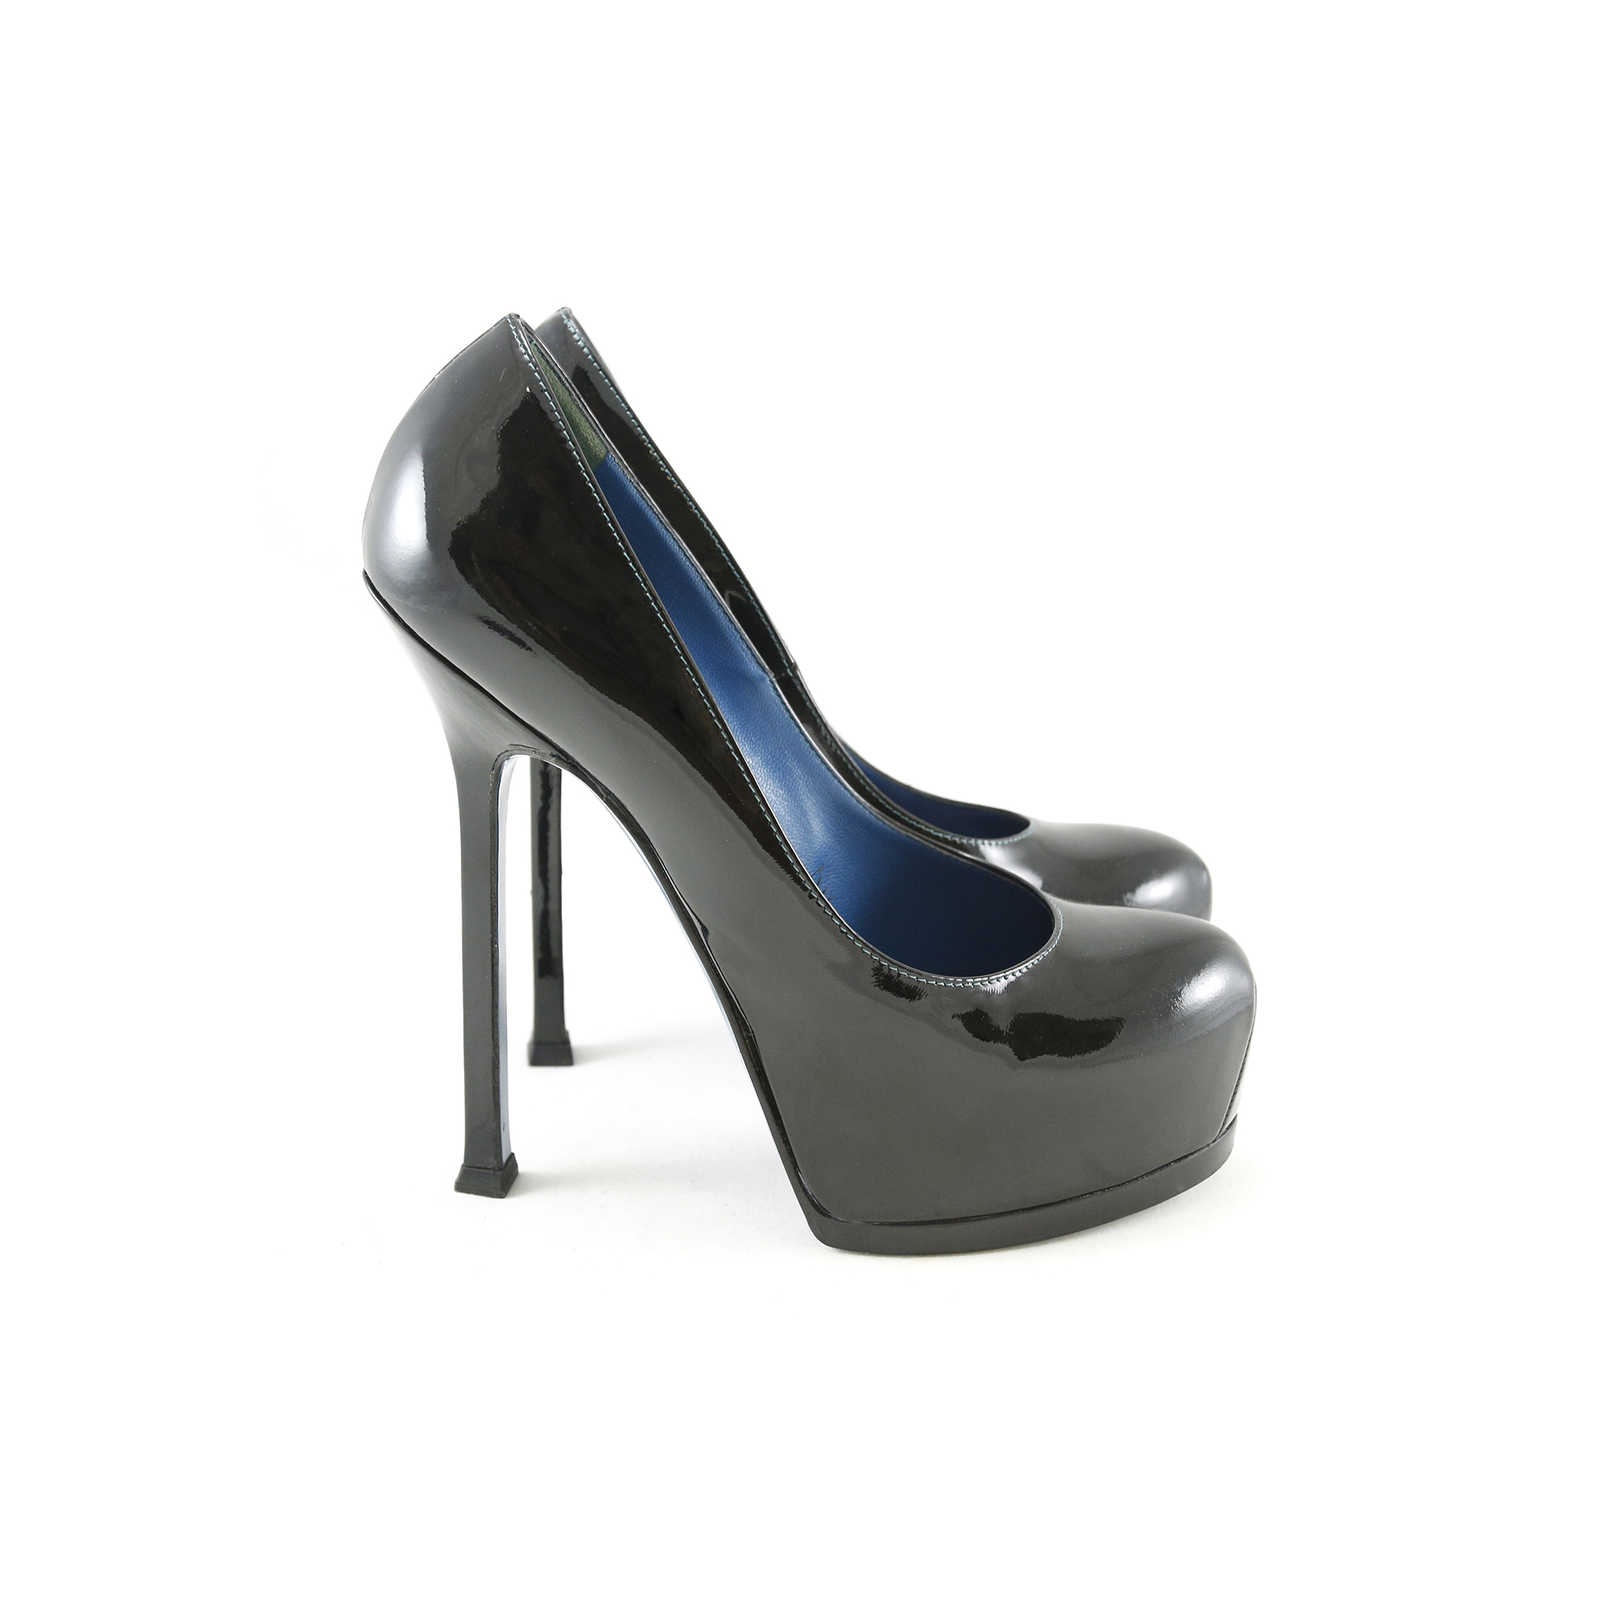 ... Authentic Pre Owned Yves Saint Laurent Tribute Pump with Blue Sole  (PSS-003- 2bc90c79e2